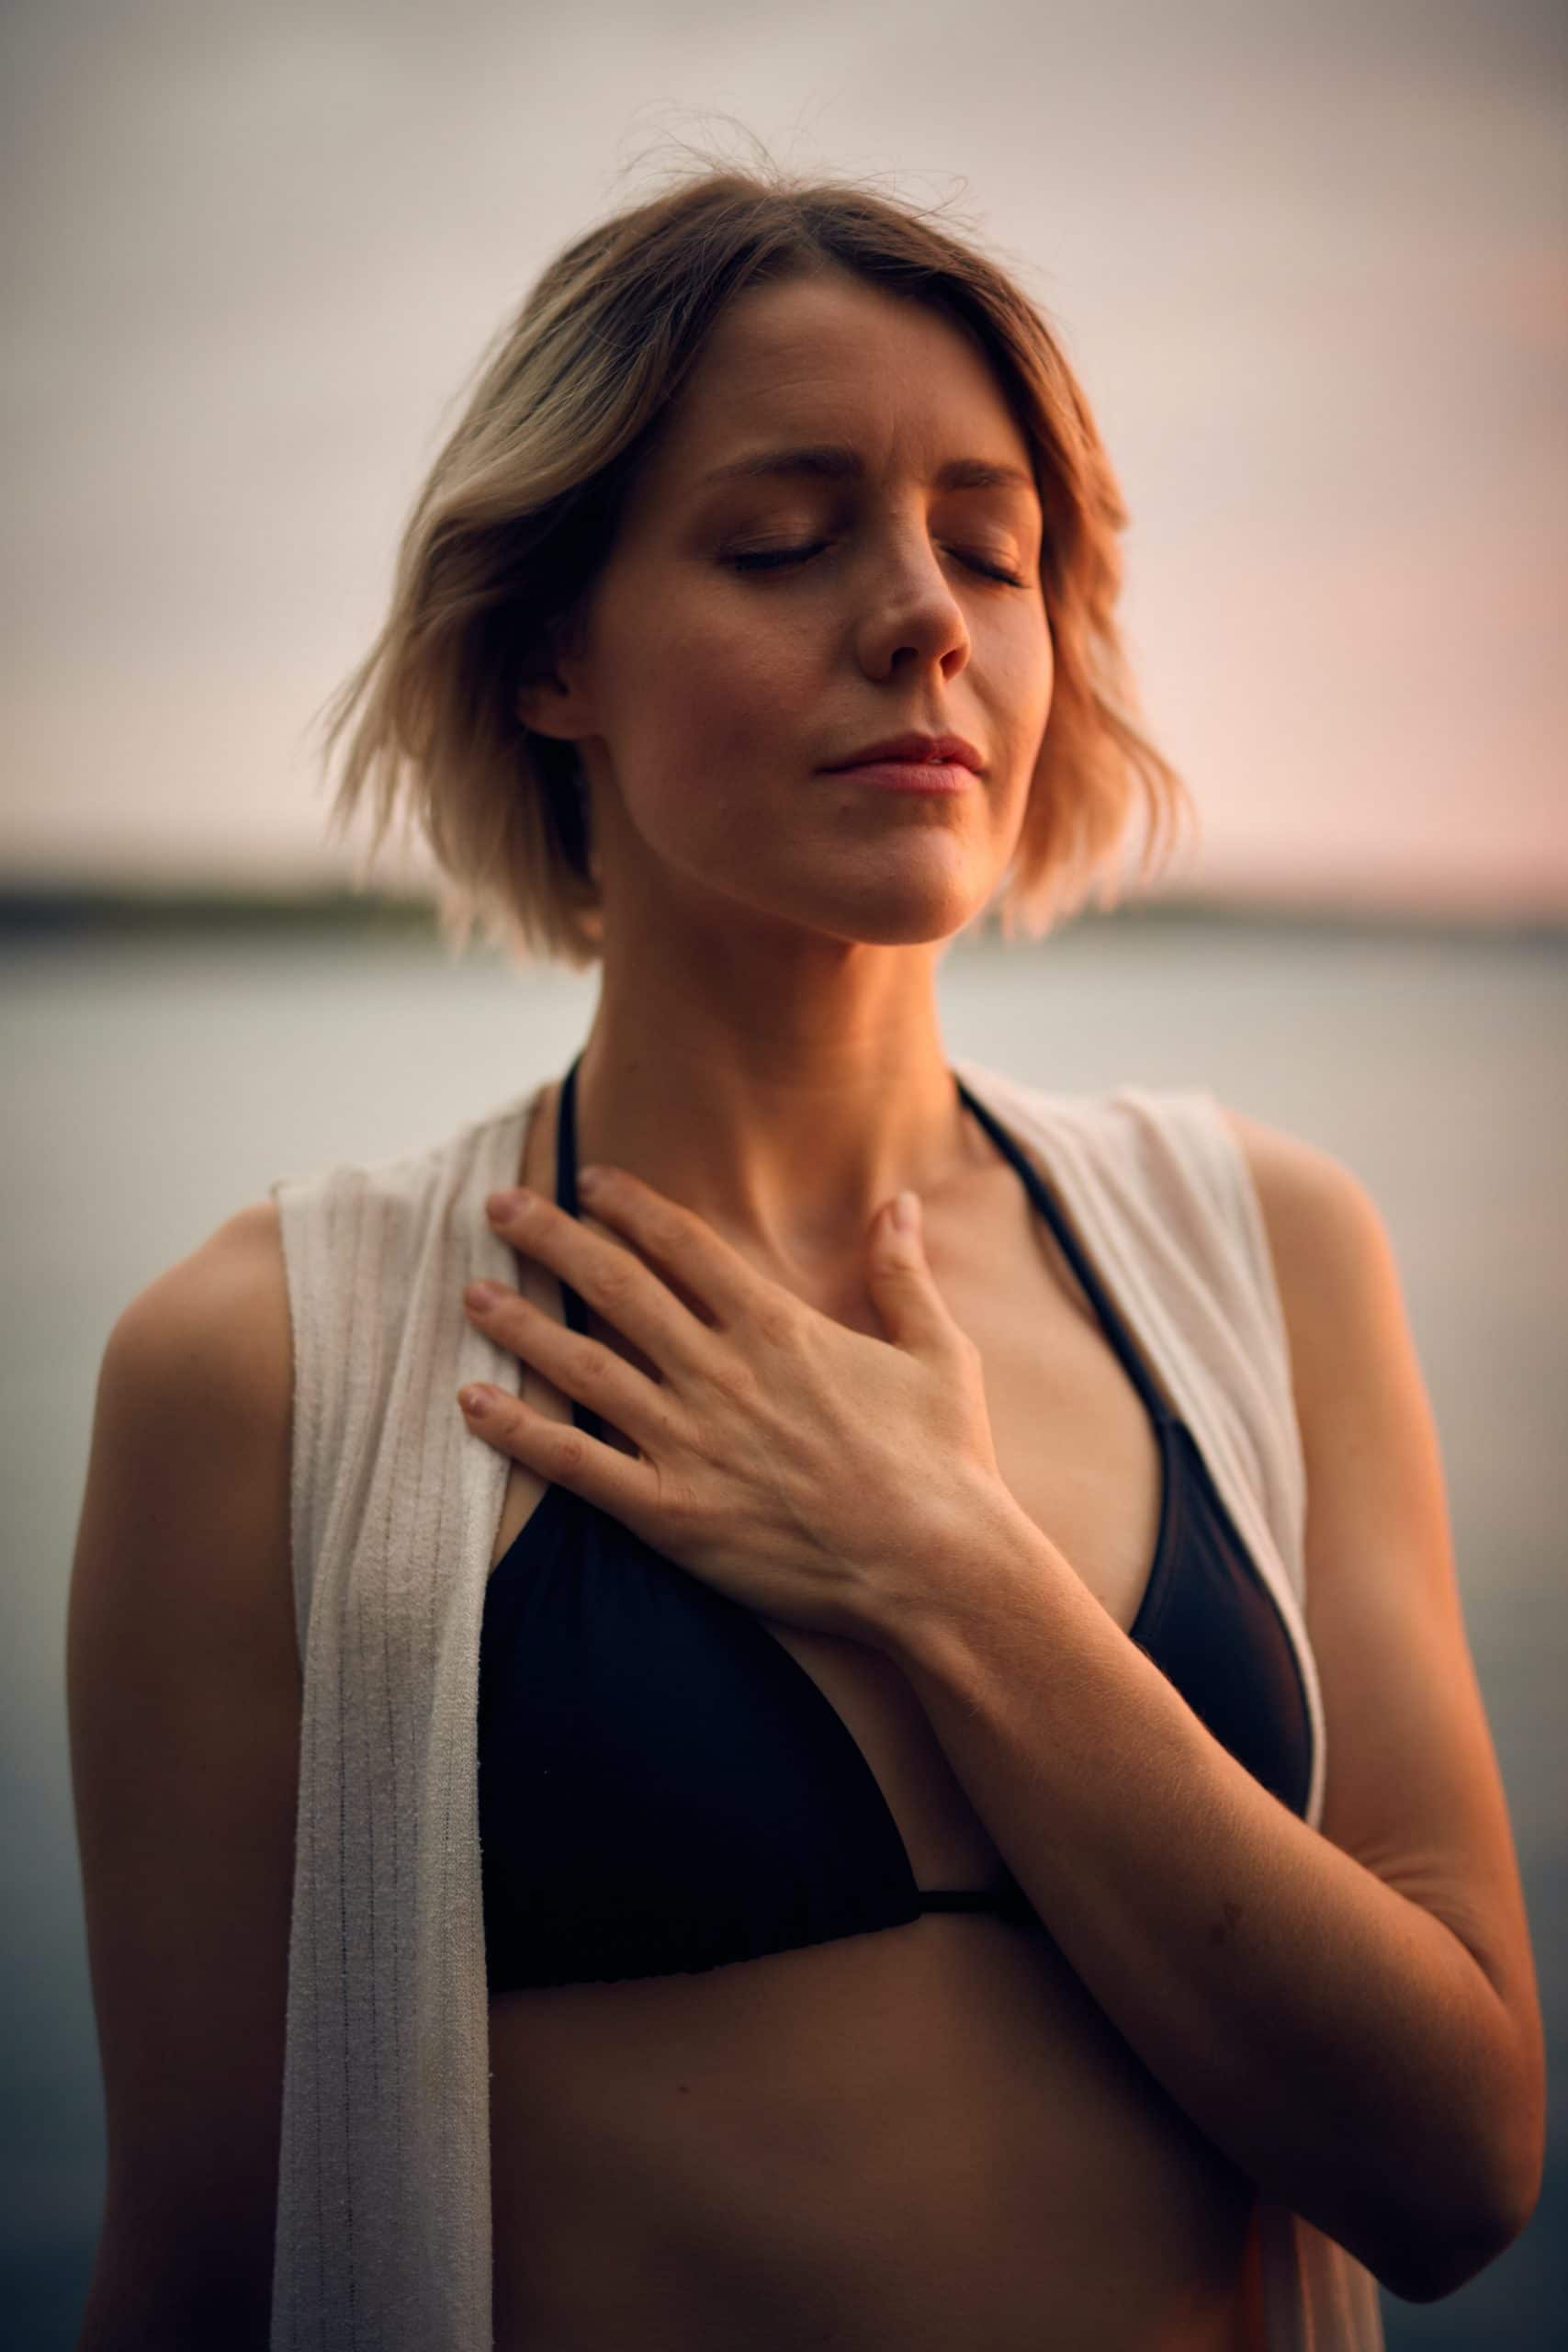 Woman practicing breathing exercises and mindfulness with hand over her heart in black swimsuit and white jacket